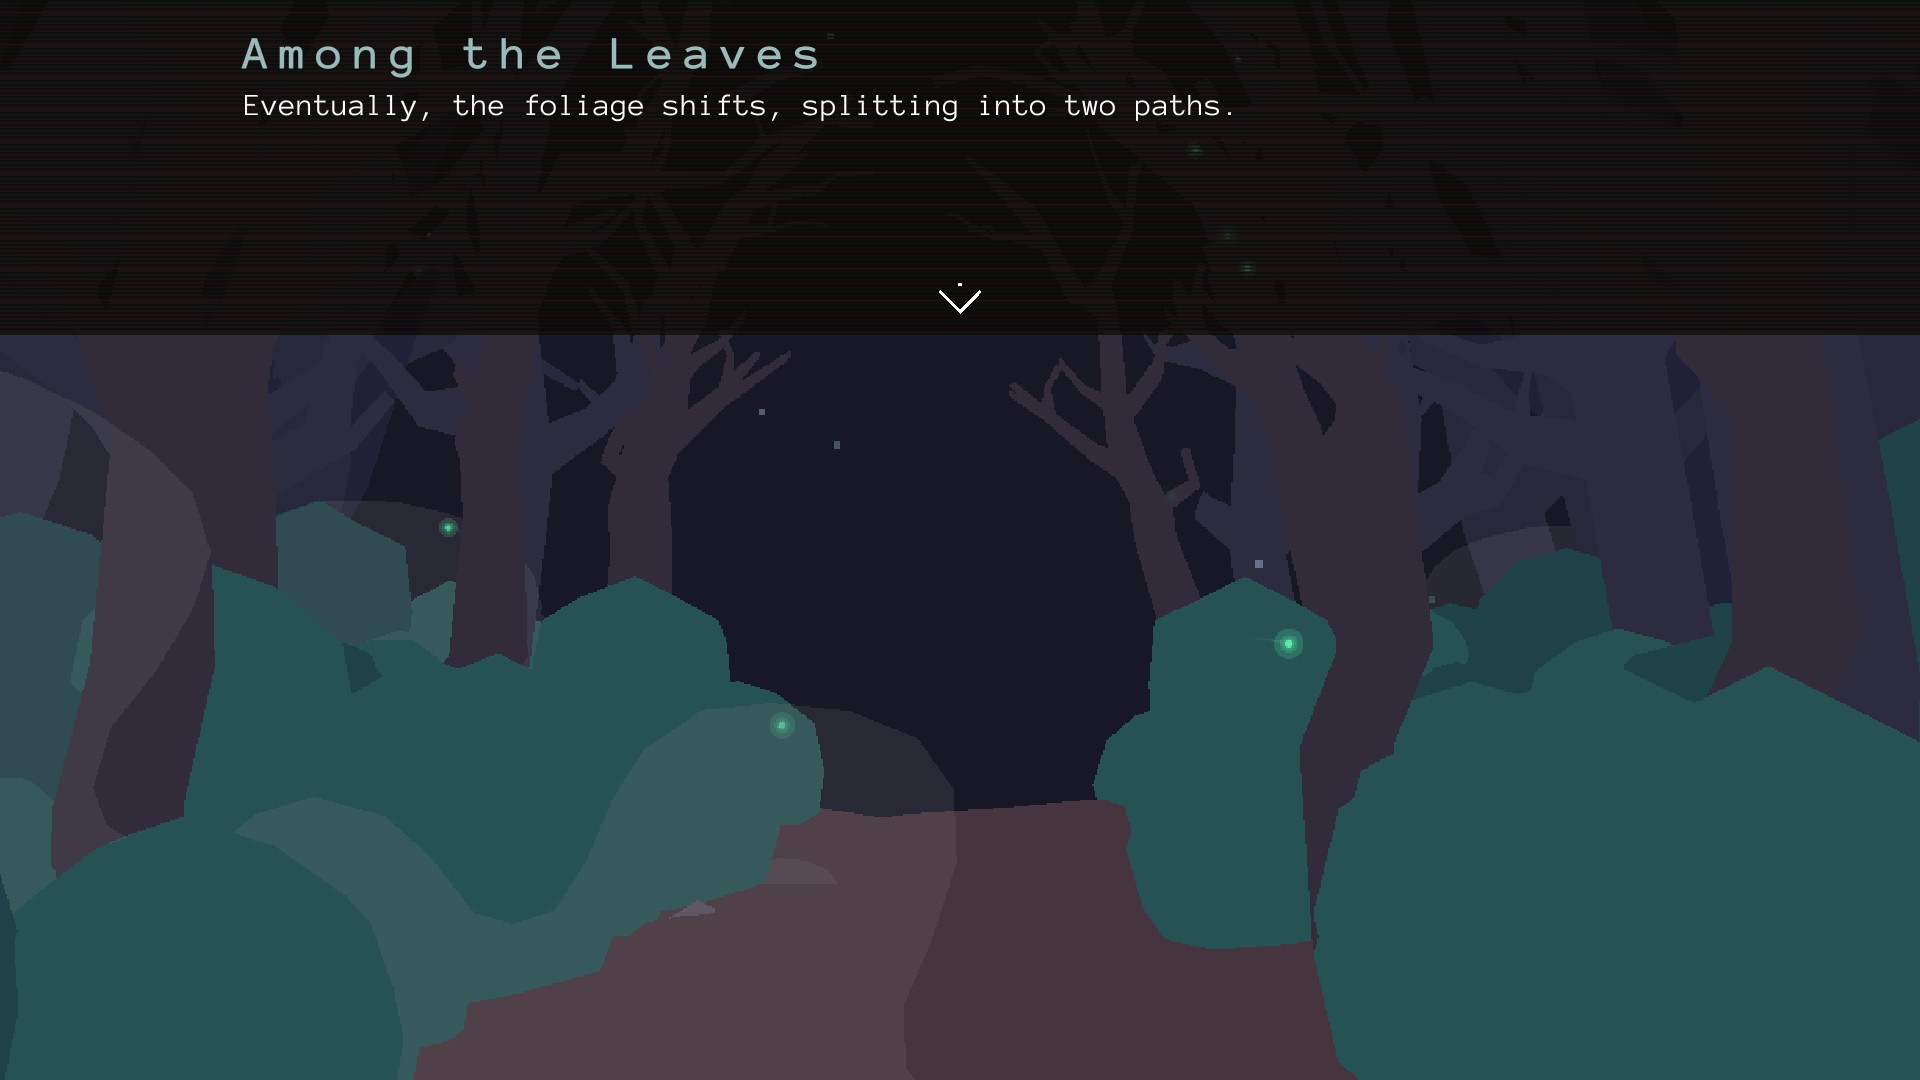 A path through a forest, with text describing it as about to split